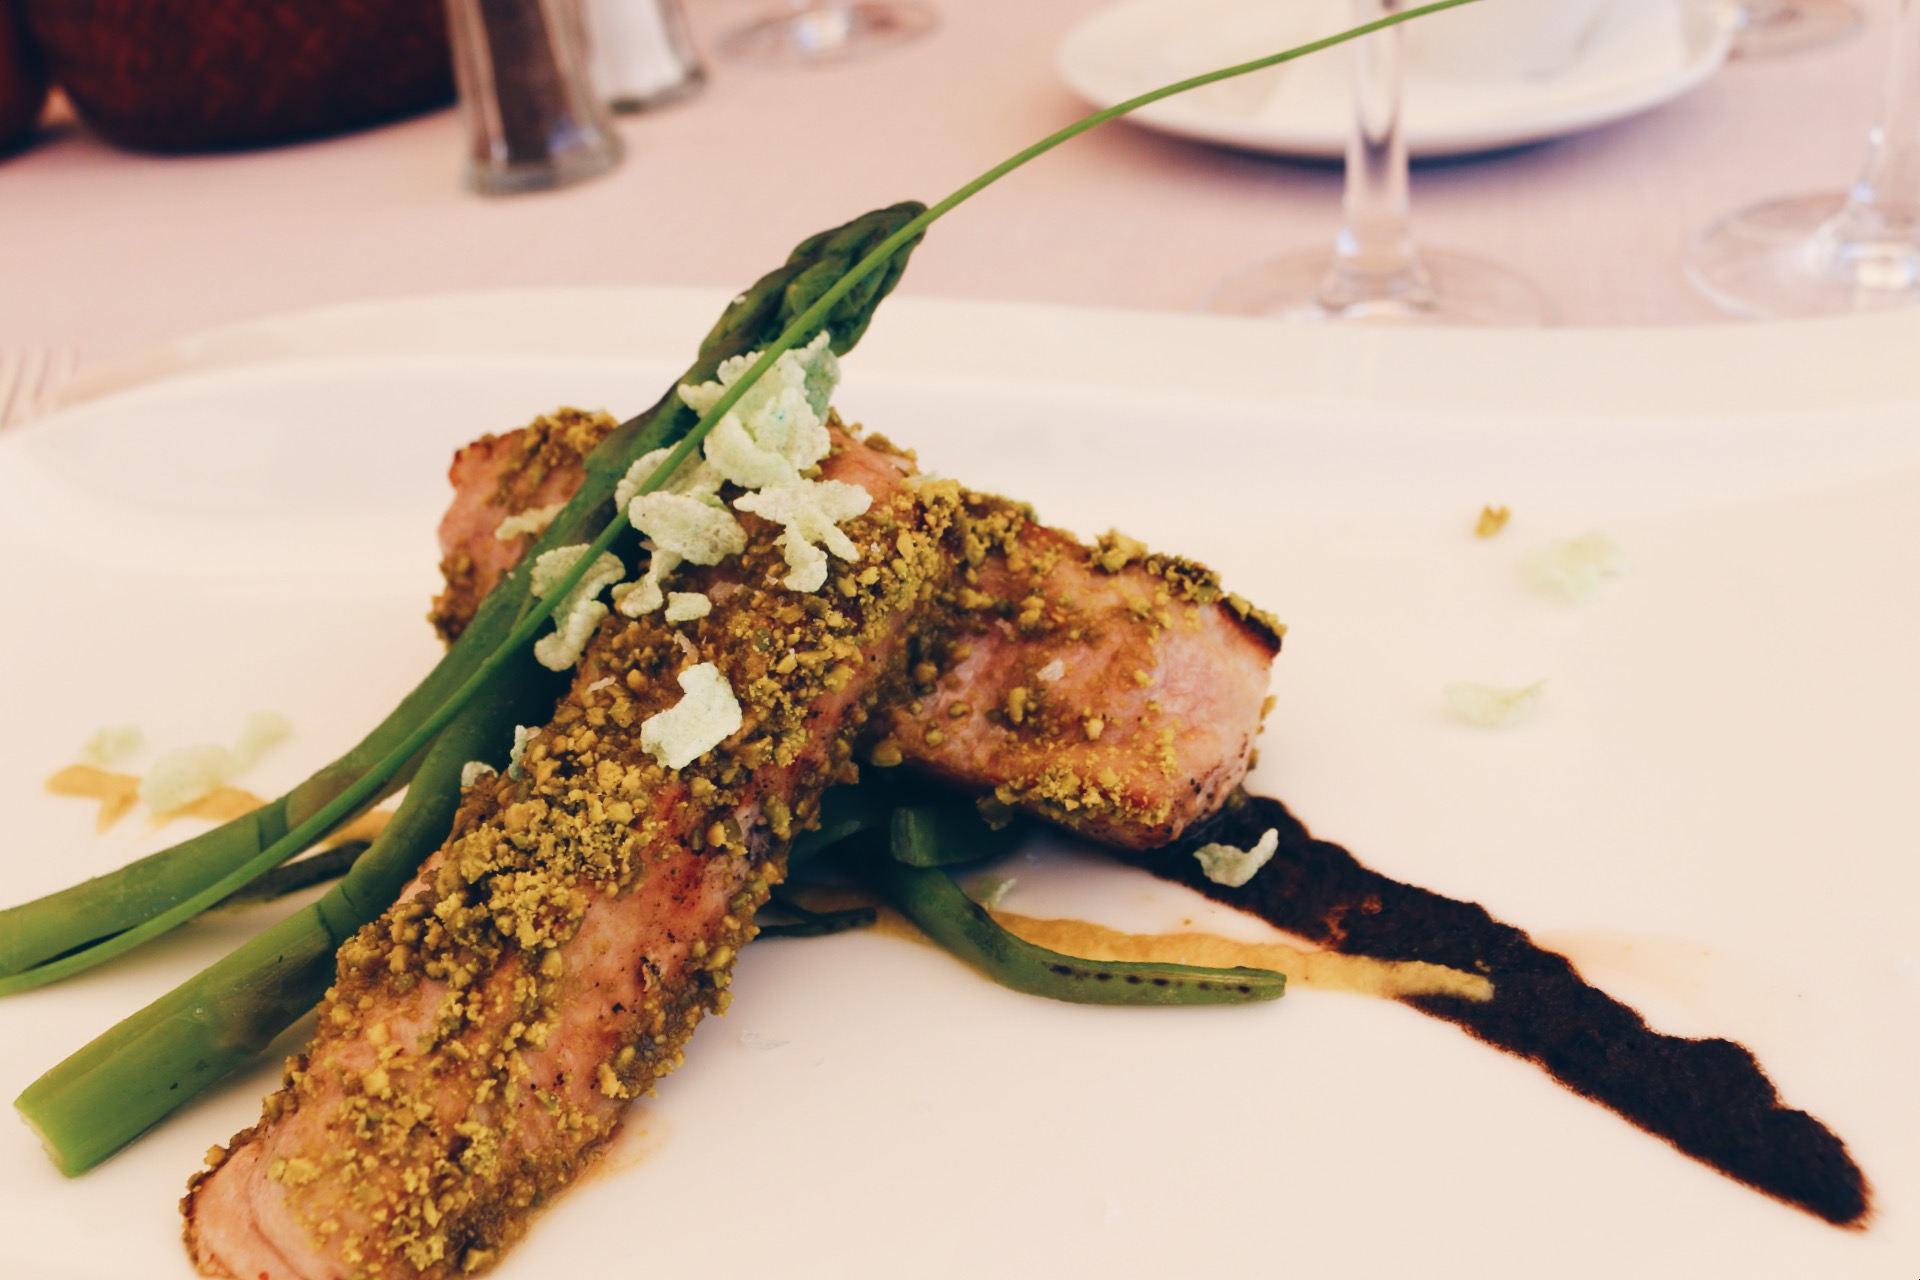 MEAT TIME. VEAL WITH ROASTED PISTACHIOS,OLIVE TAPENADE AND PESTO